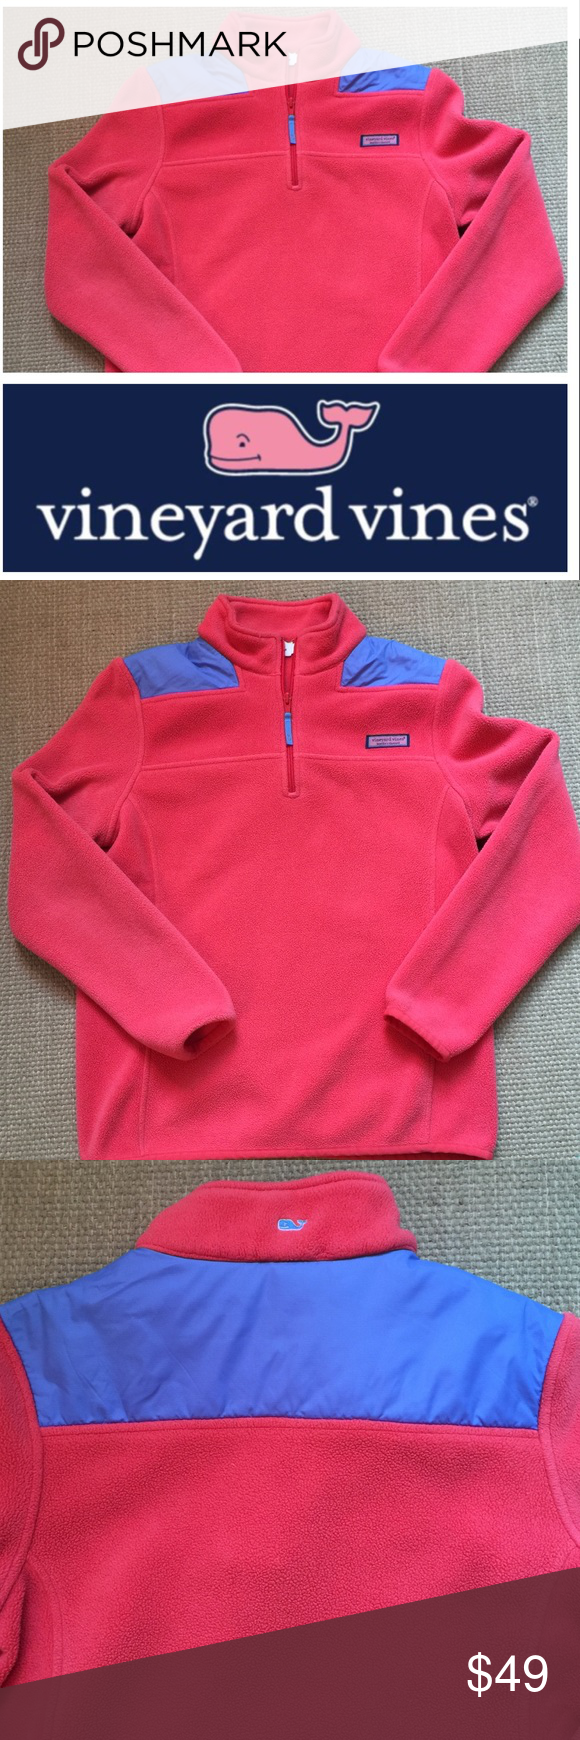 Vineyard Vines Fleece Shep Shirt Fleece Shep Shirt perfect for those chilly beach nights. Prettiest coral pink color and periwinkle blue shoulders. In well loved condition. Slight fabric imperfection on backside shown in 3rd picture. Offers welcome  Vineyard Vines Tops Sweatshirts & Hoodies